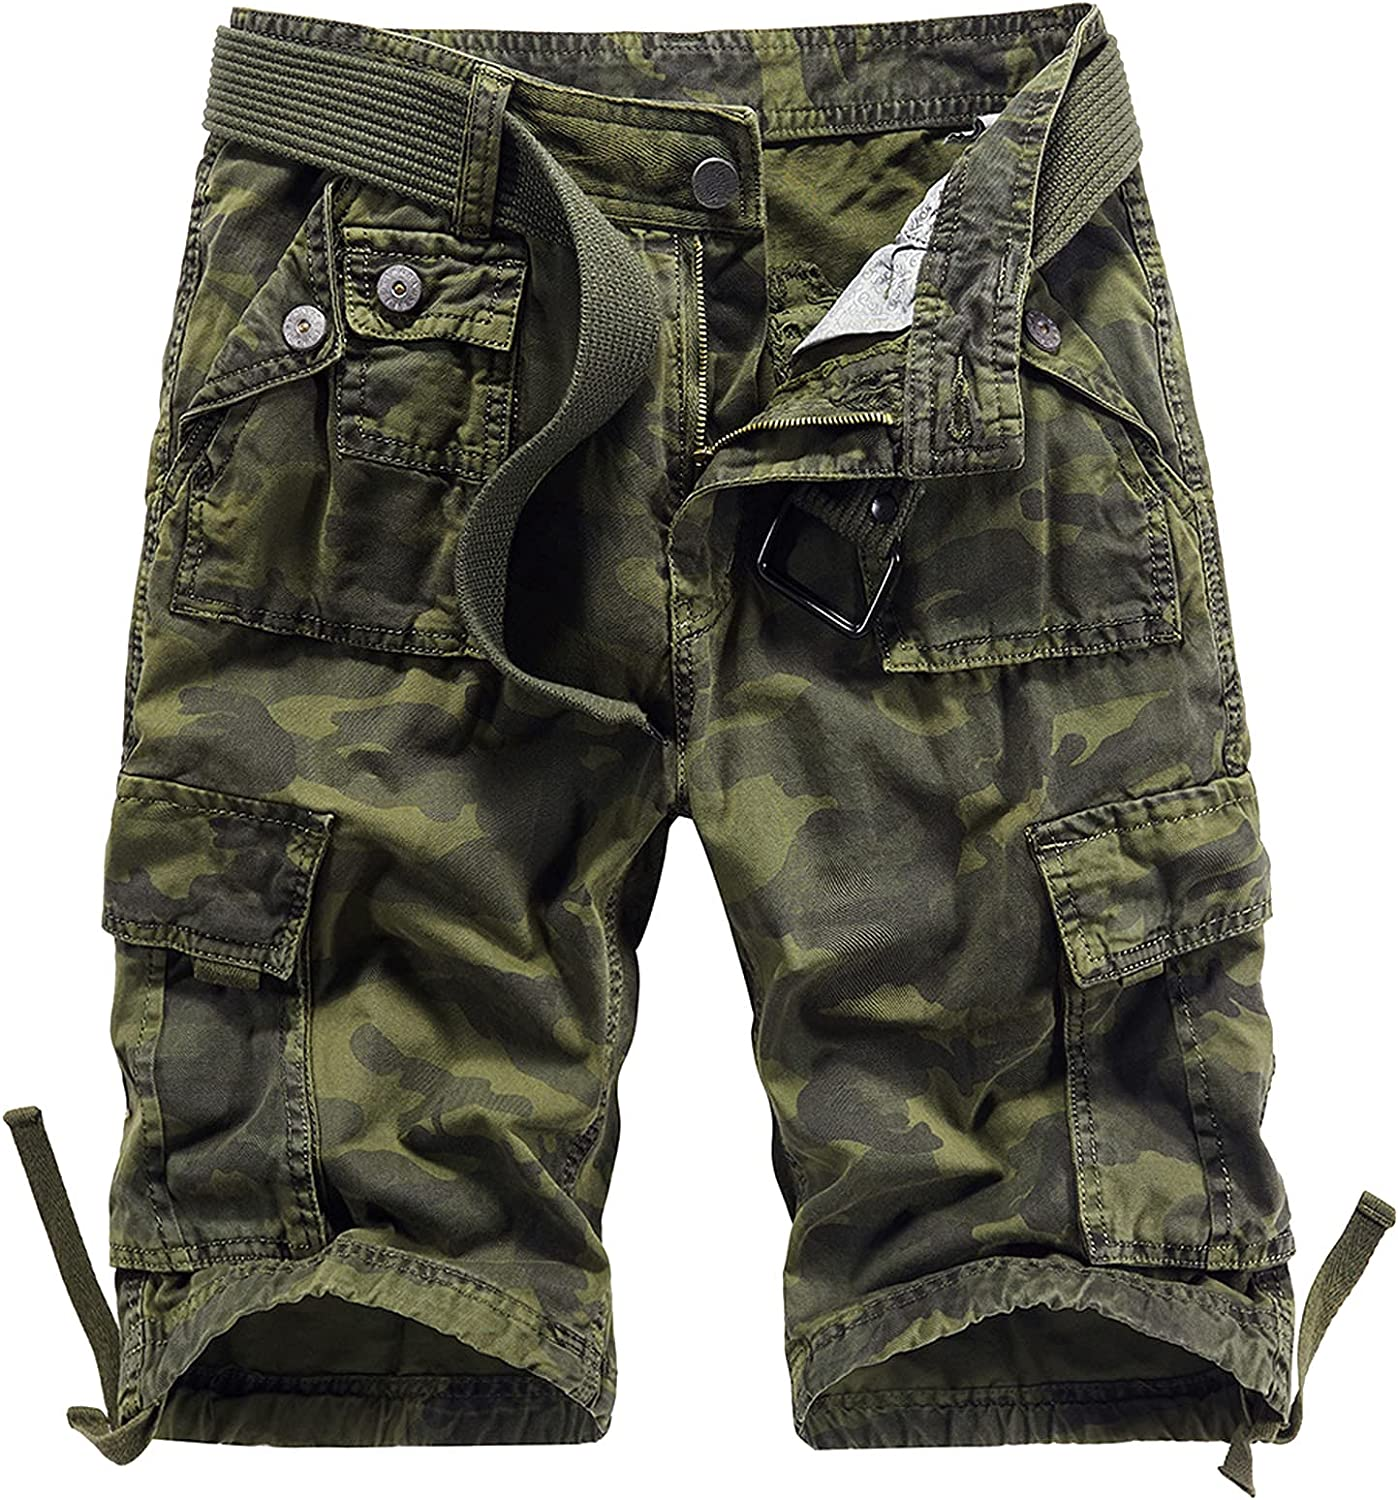 B dressy Men Summer Casual Loose Camouflage Cargo Shorts Multi-Pocket 100% Cotton Street Military Knee-Length Beach-Green Camouflage-32